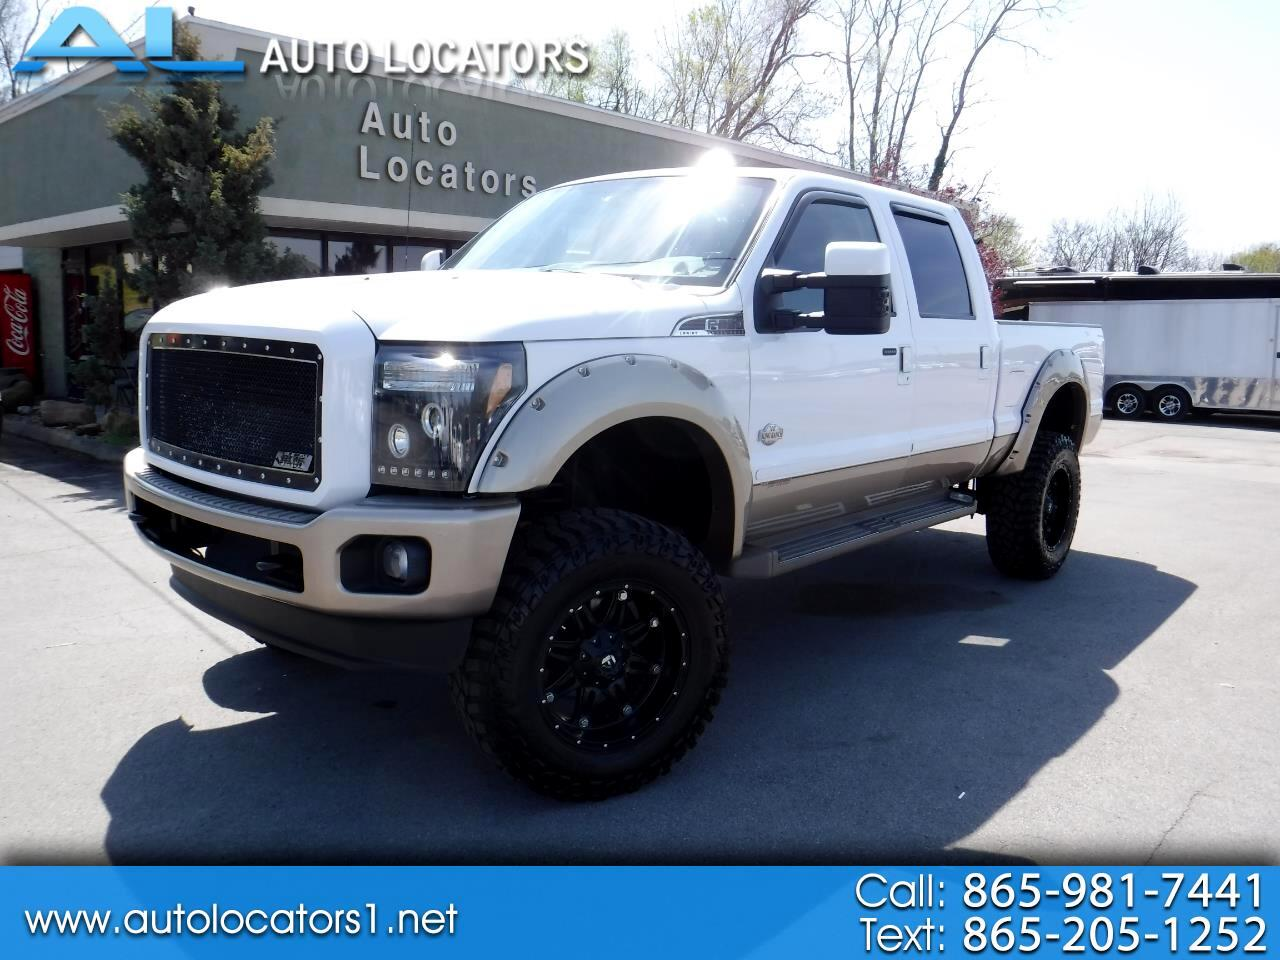 2013 Ford Super Duty F-350 SRW Lariat Crew Cab 4x4 King Ranch